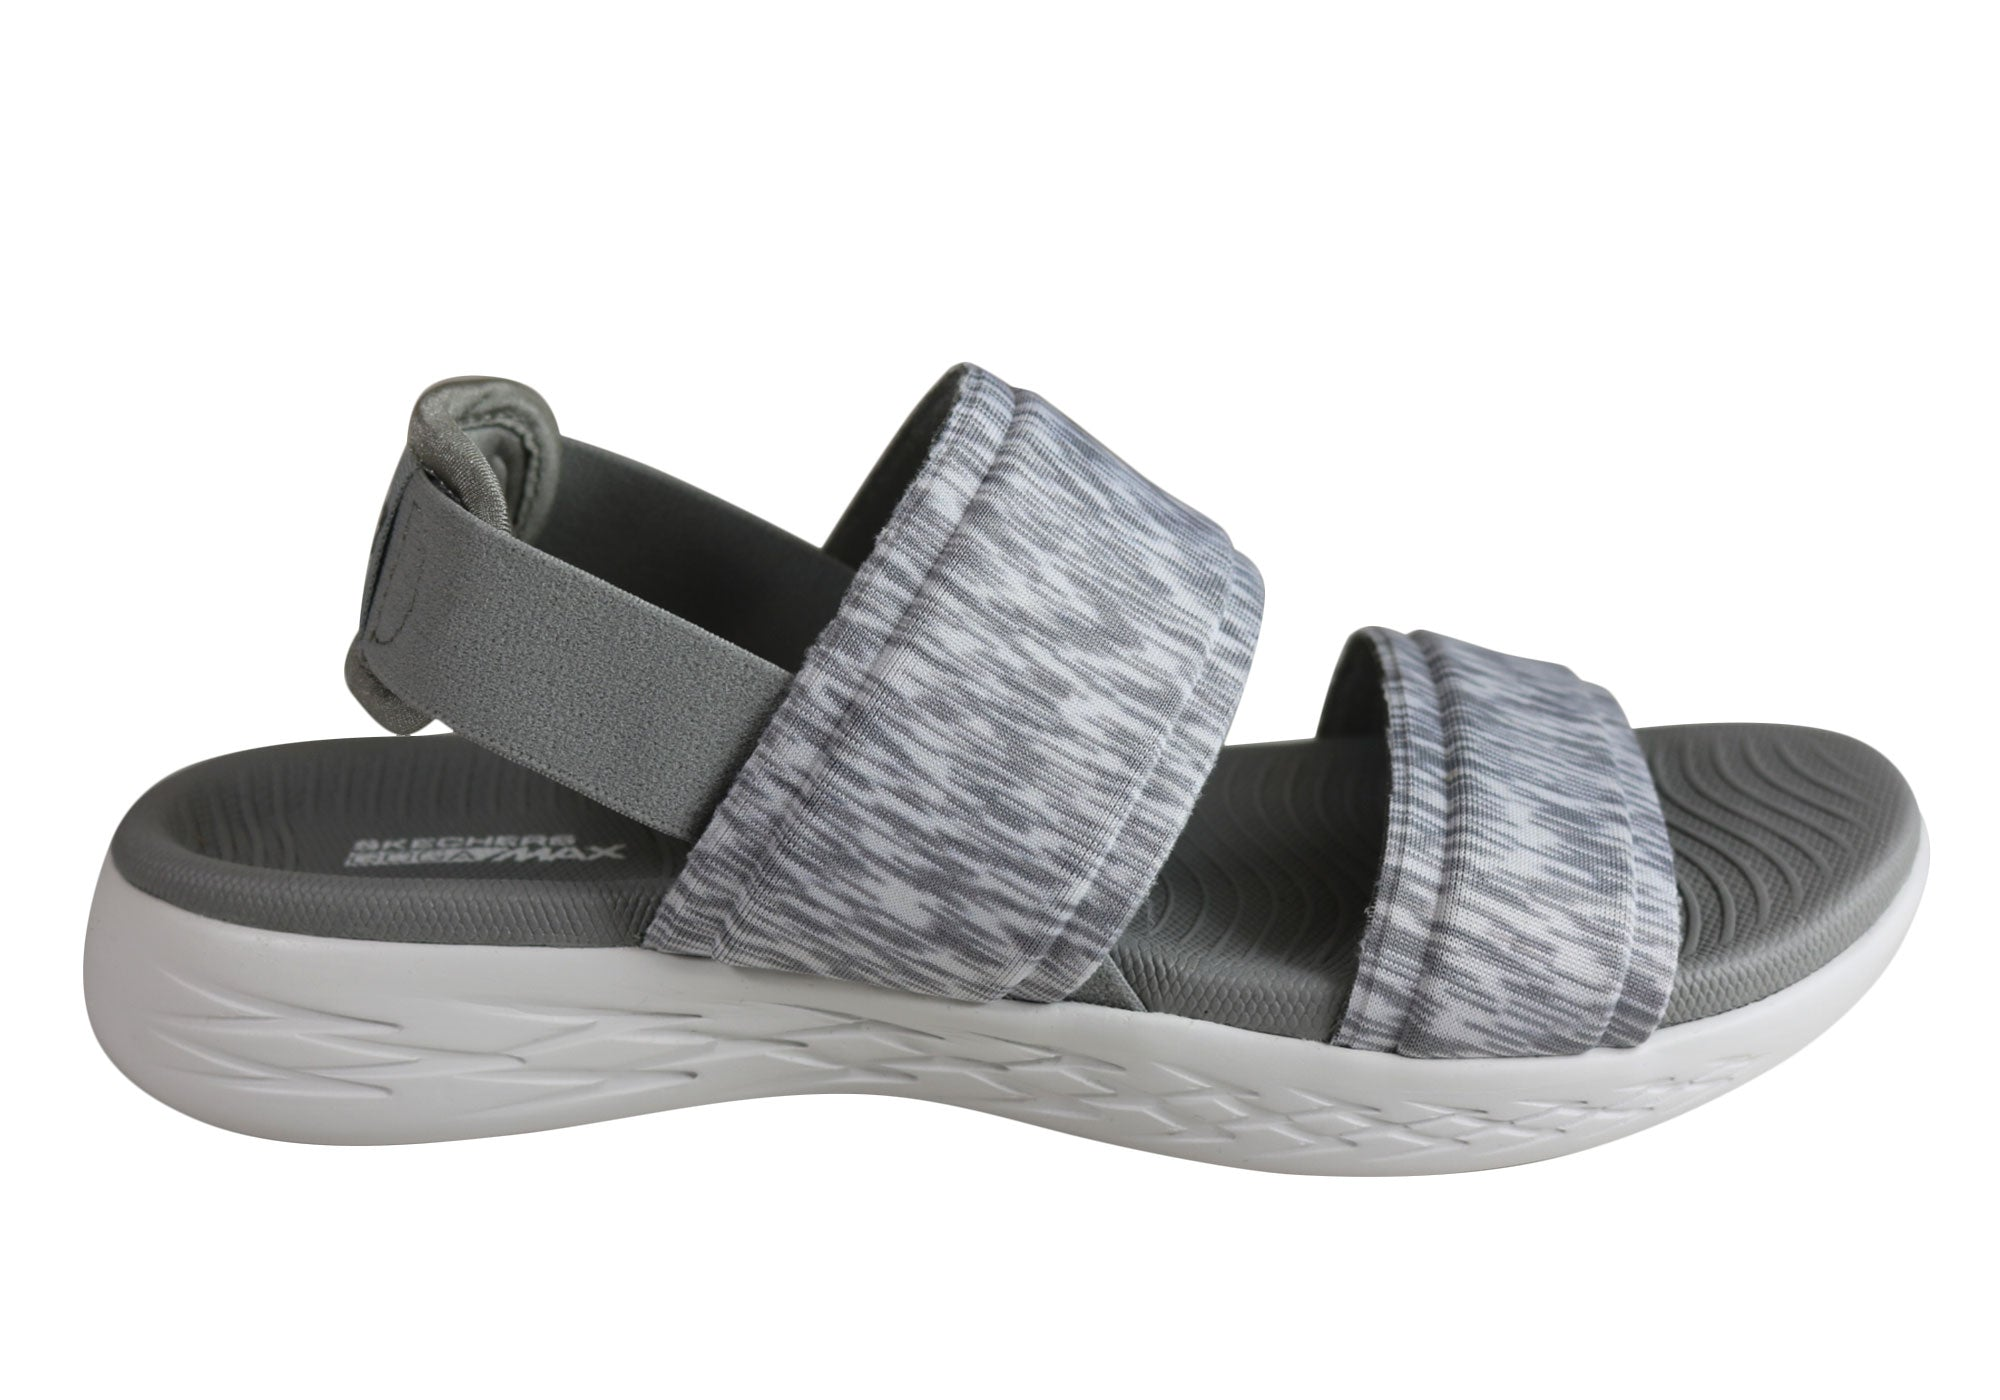 0813d3341007 Home Skechers Womens On The Go 600 Cushioned Comfortable Flat Sandals. Grey  ...